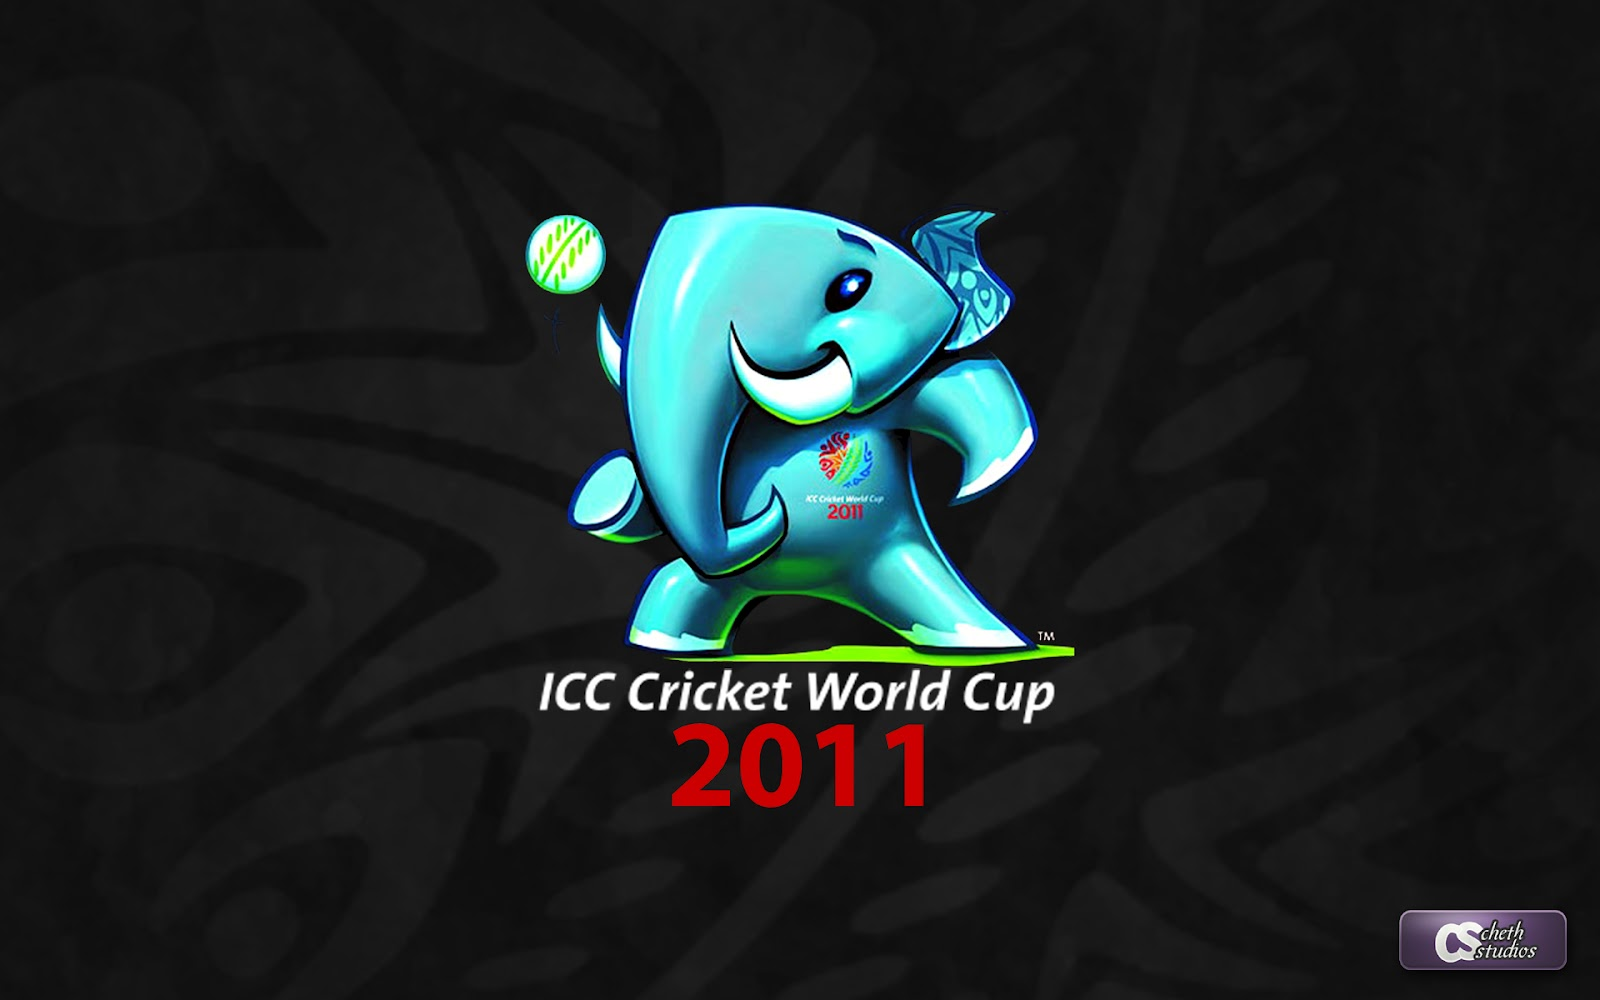 http://1.bp.blogspot.com/-HIX6Jk2o7Bw/T4bMj_oGrgI/AAAAAAAABMM/2HKk8msOIfw/s1600/icc-cricket-world-cup-2011-wallpapers%5Bworld4free.in%5D+(11).jpg